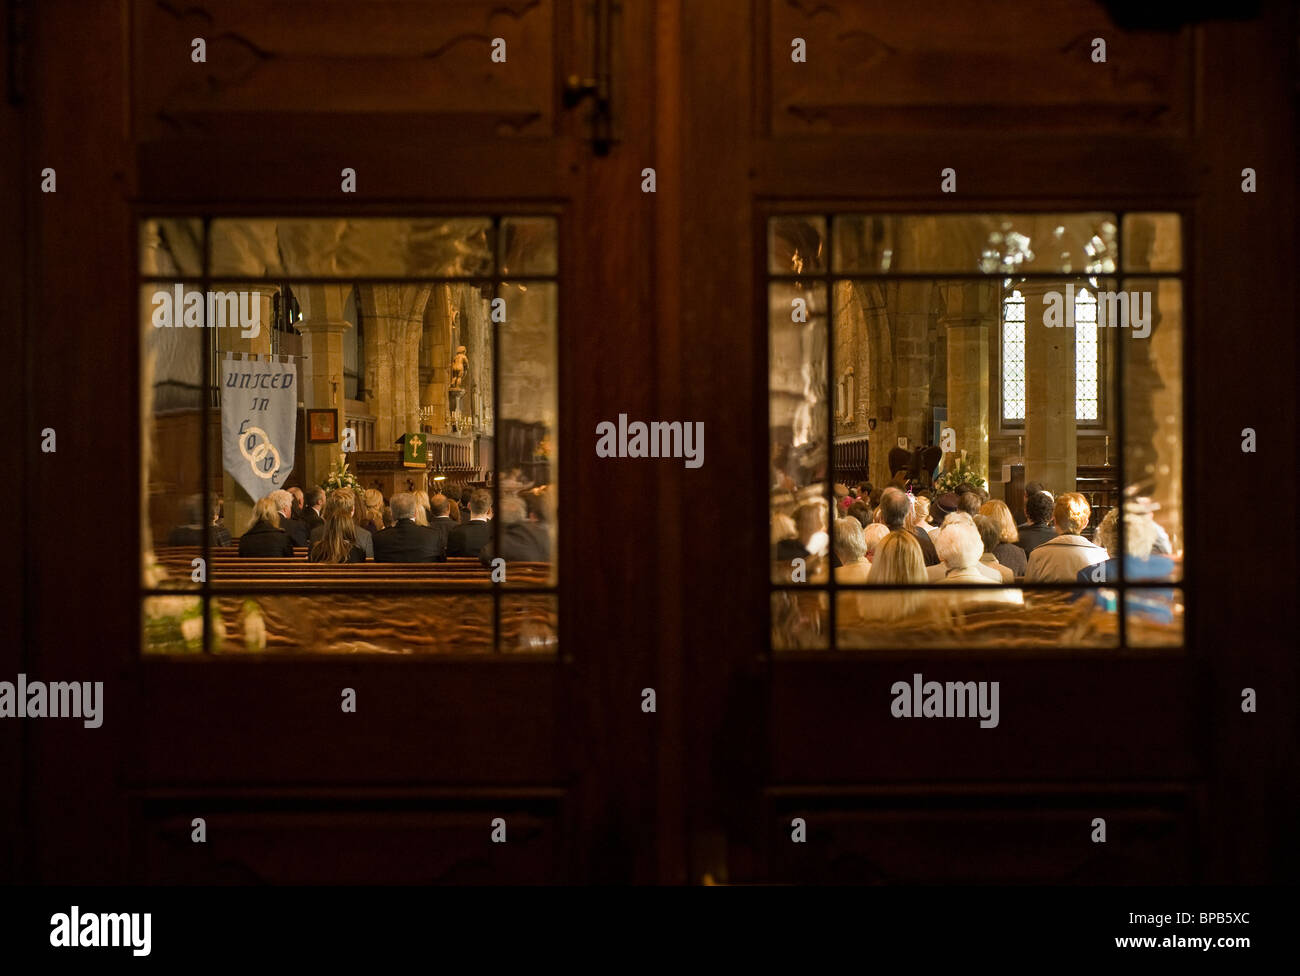 congegation in church viewed through windows - Stock Image